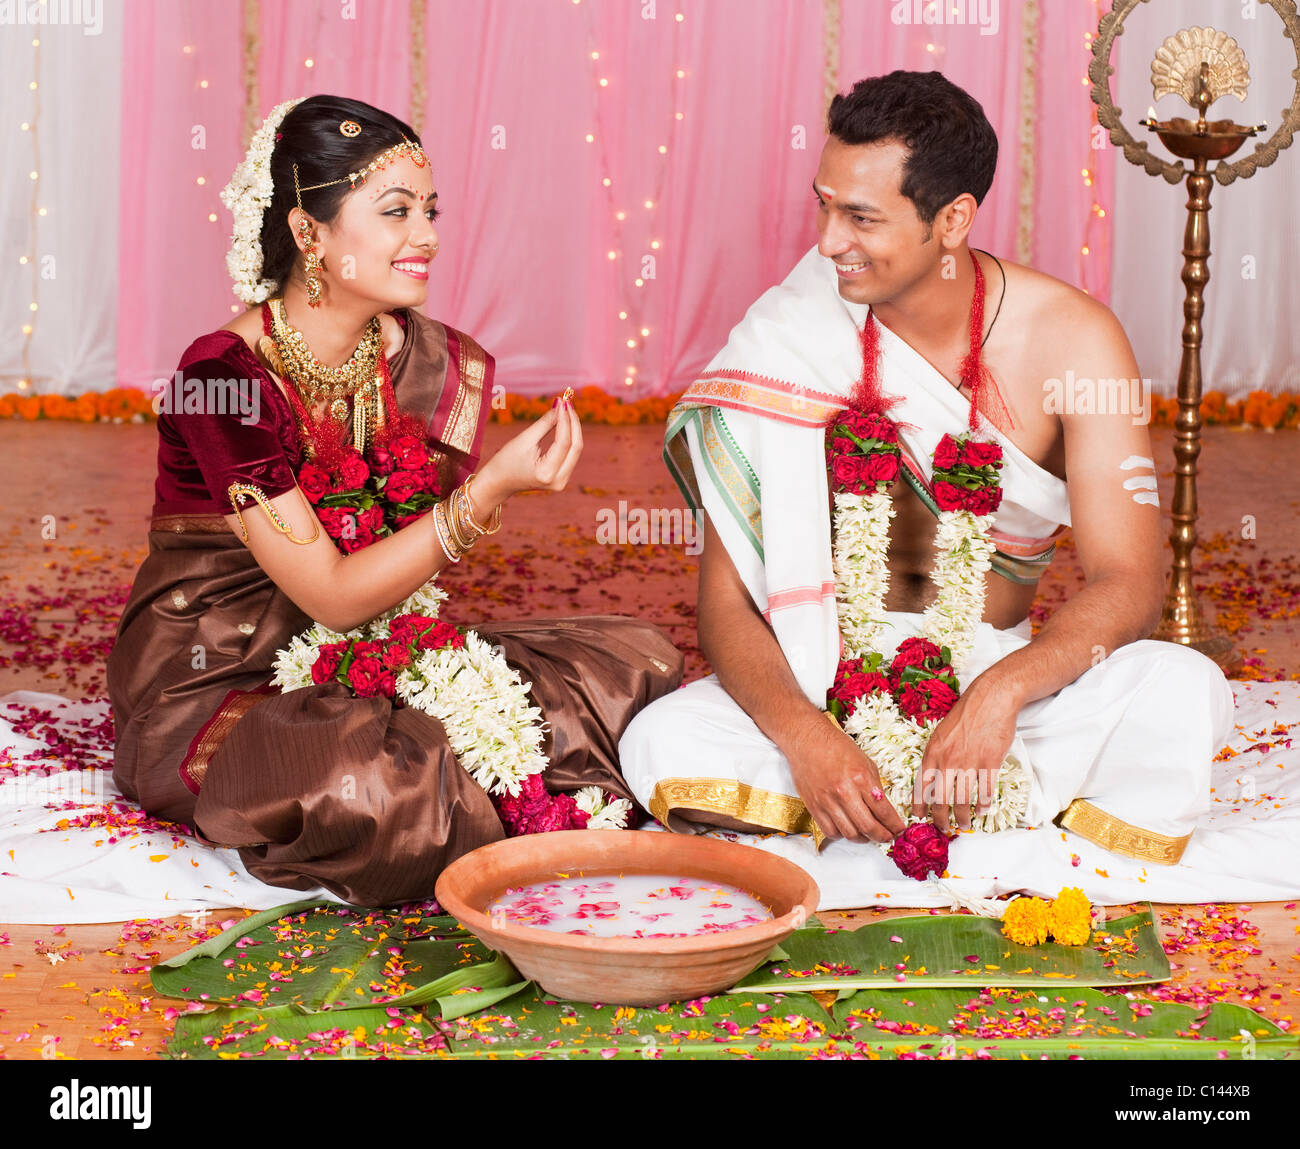 Indian Wedding Couple High Resolution Stock Photography And Images Alamy